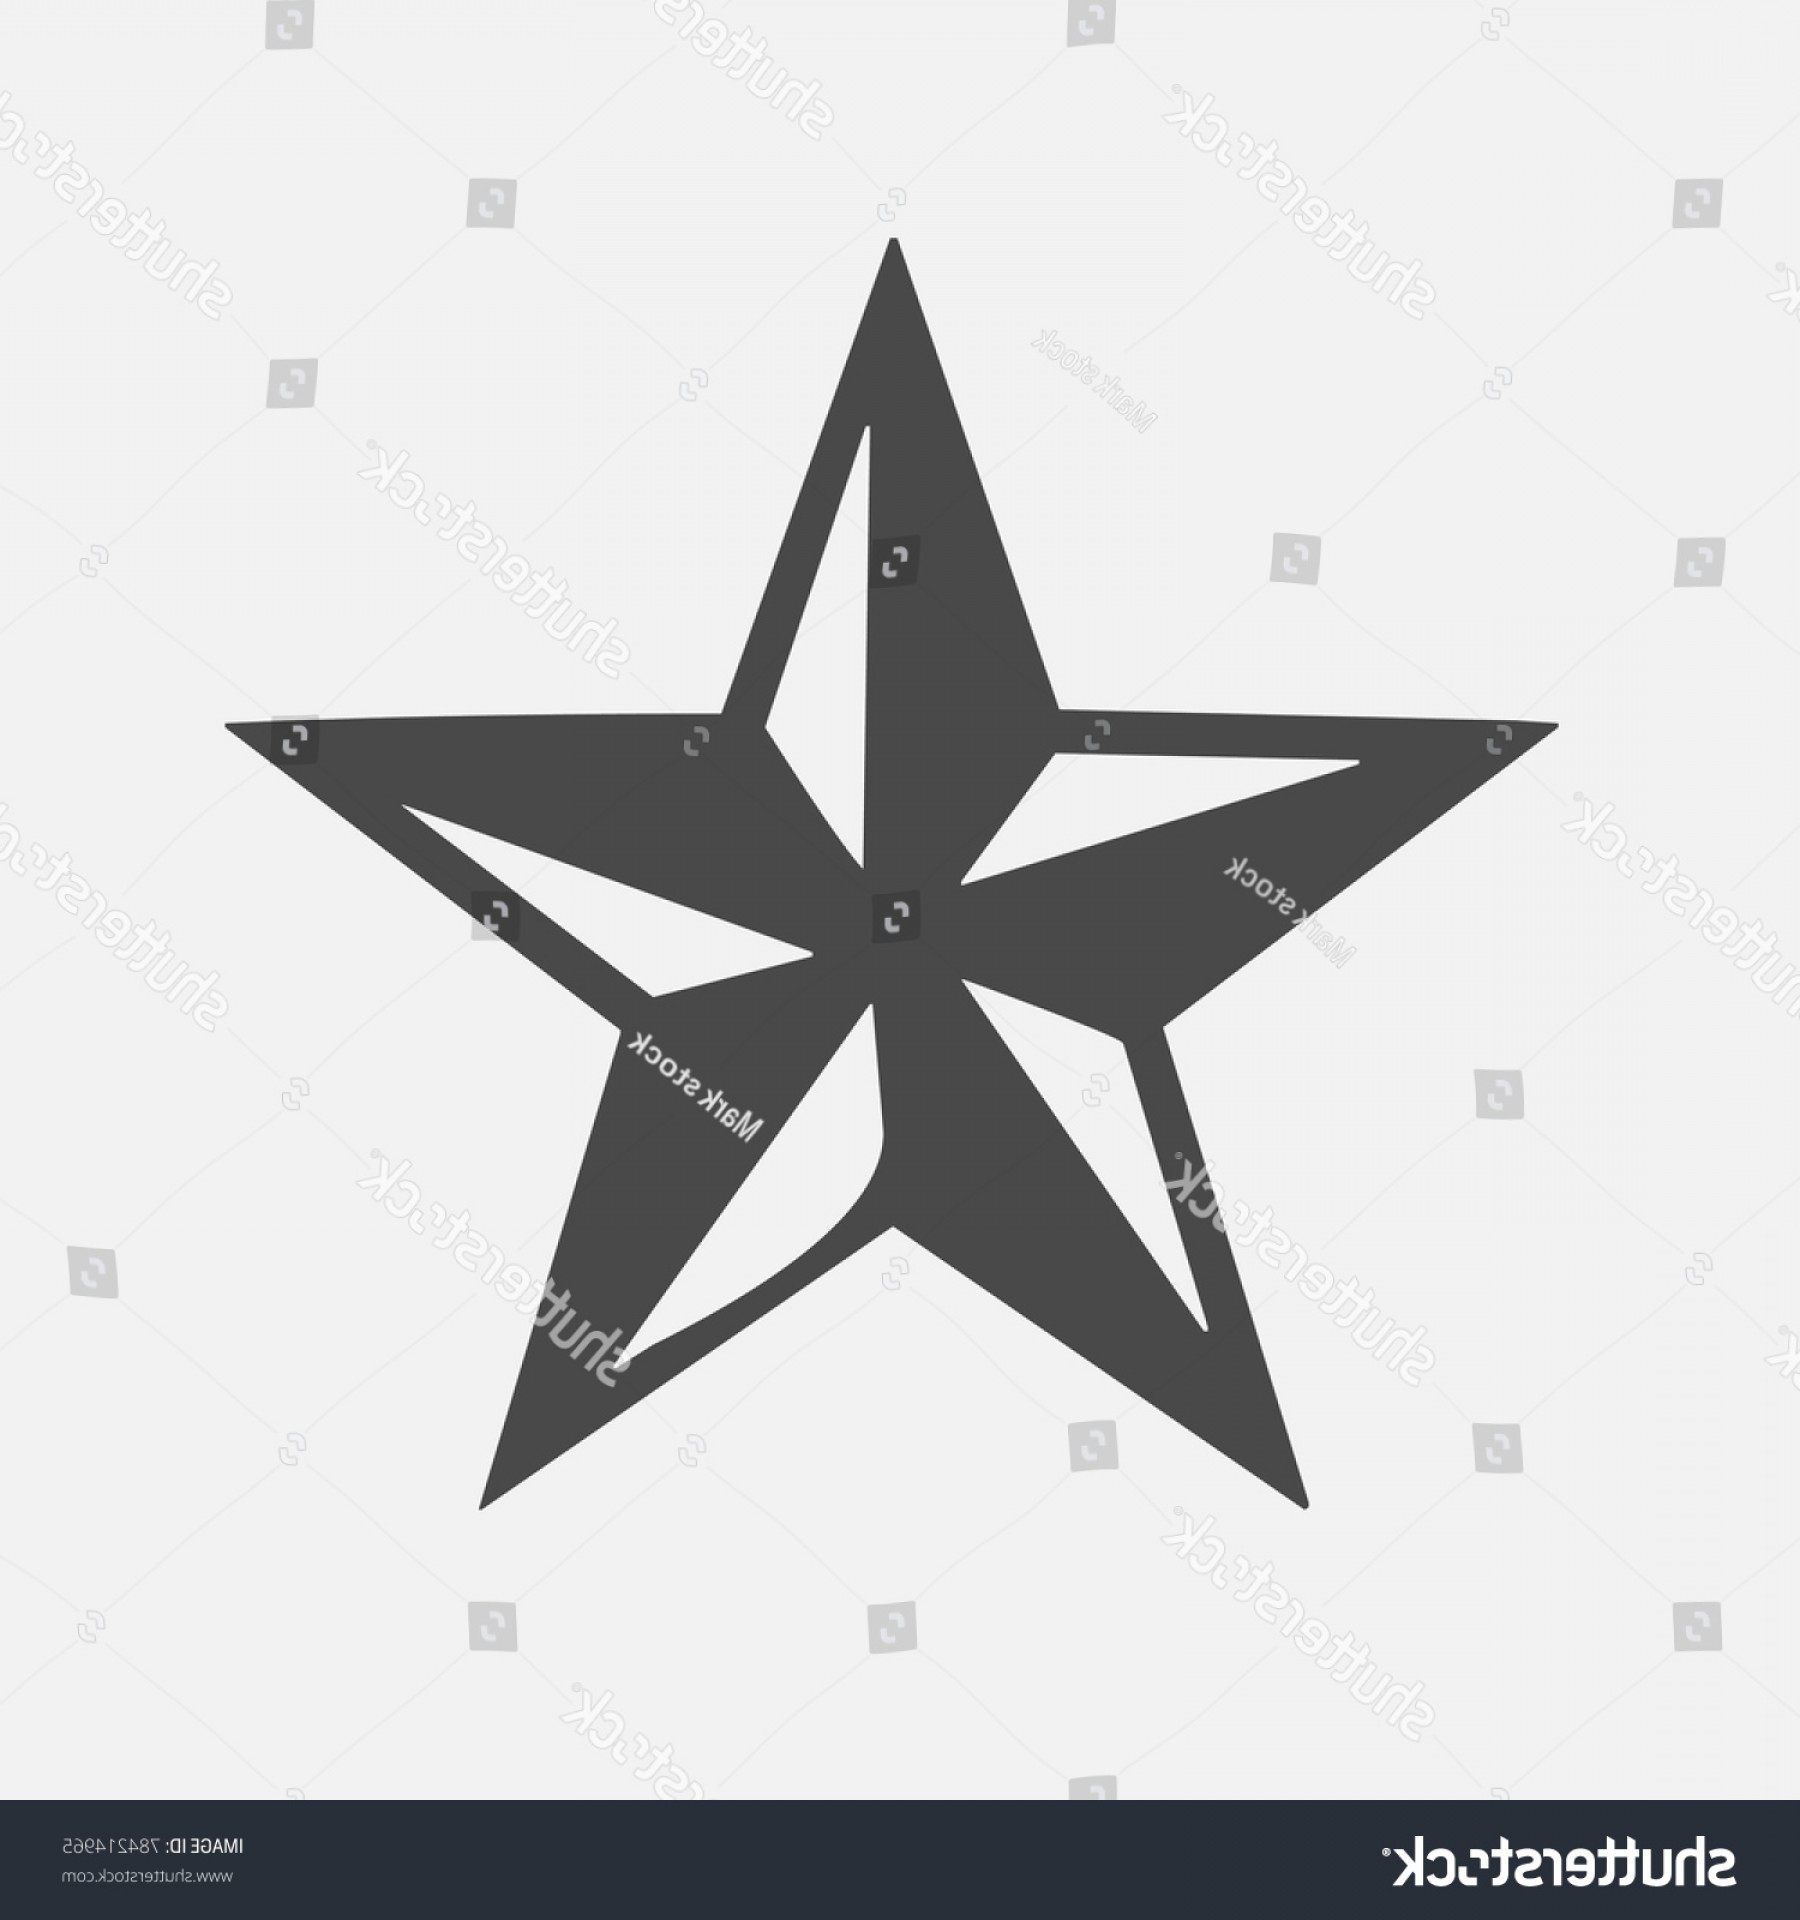 Nautical Star Vector Logo: Five Star Symbol D Space Feature